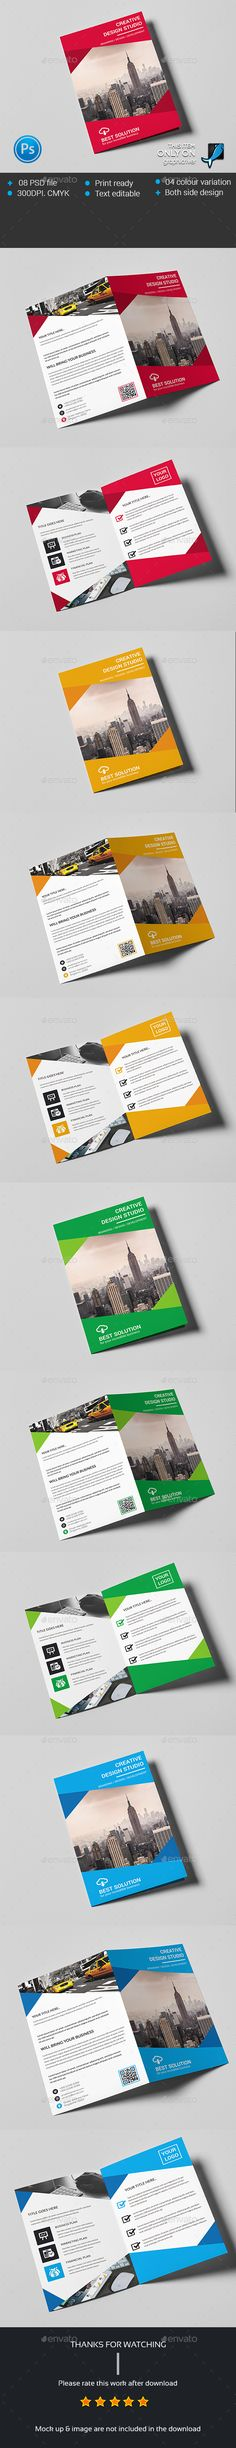 Corporate Business Bi-fold Brochure Template PSD #design Download: http://graphicriver.net/item/corporate-business-bifold-brochure/13948978?ref=ksioks